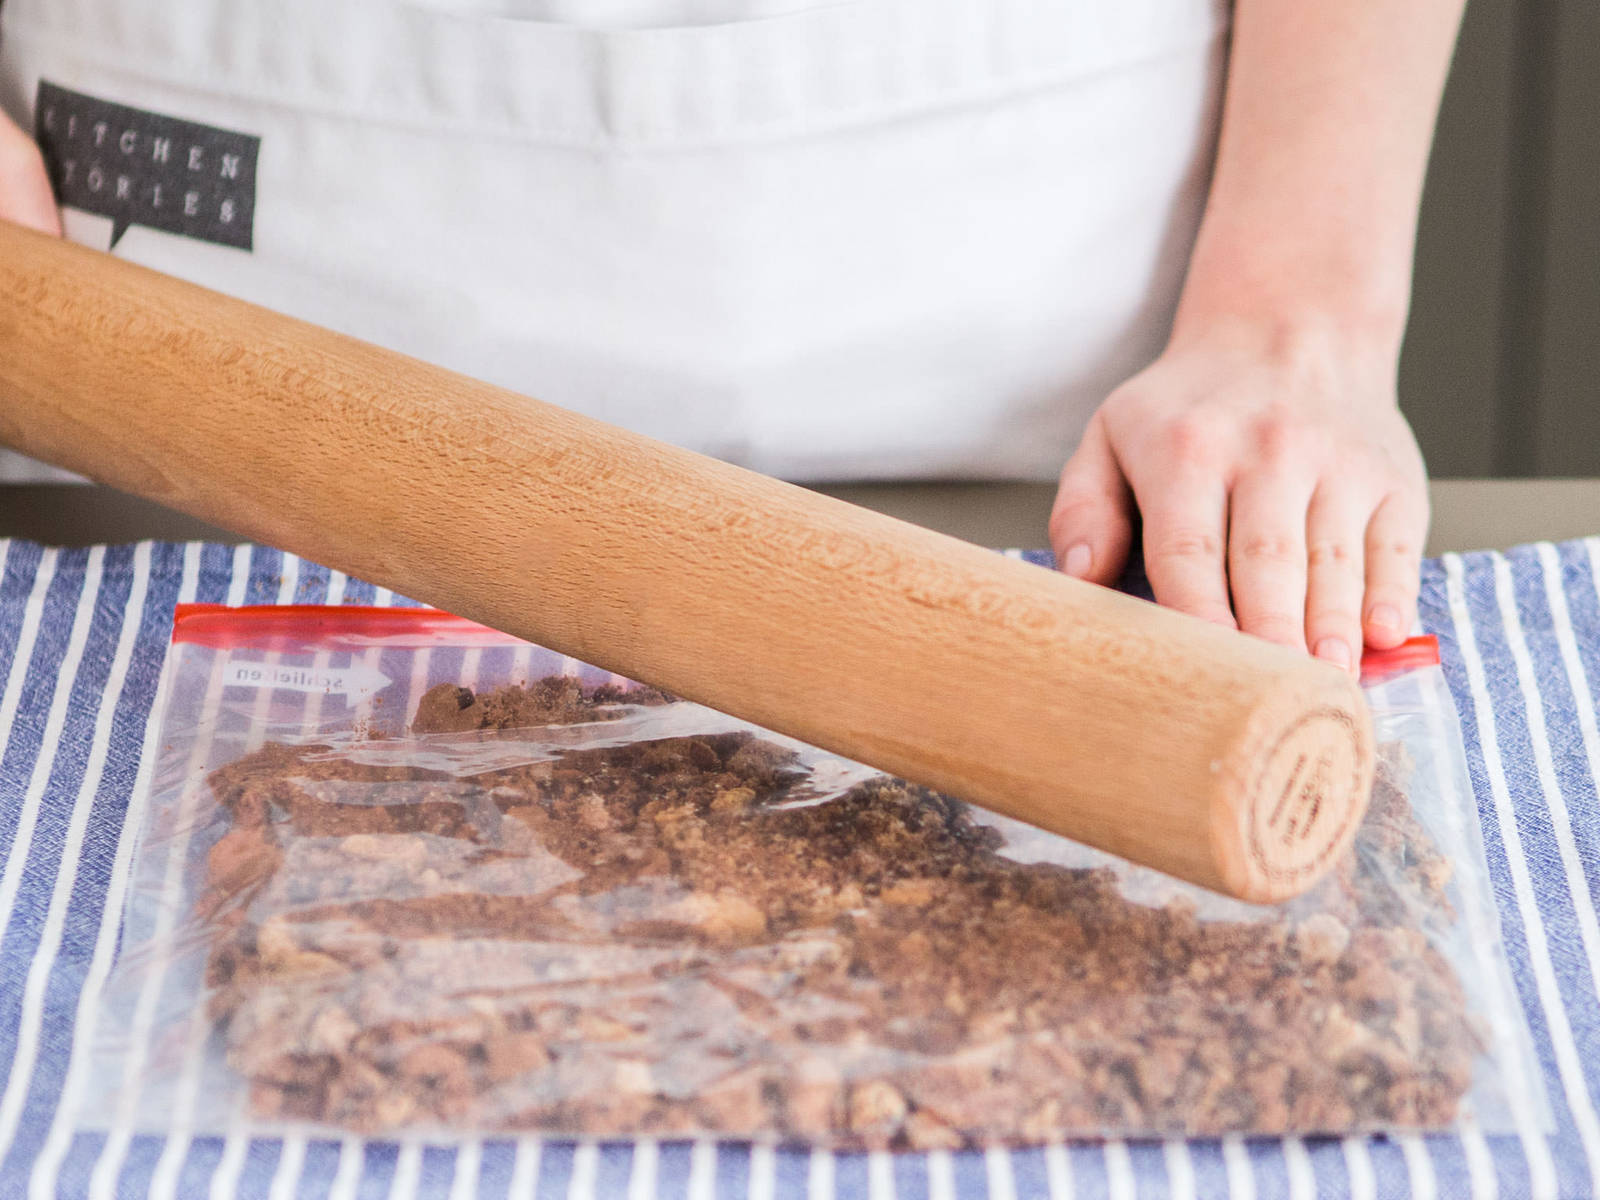 Place cookies in a freezer bag. Tightly seal bag and crush cookies with a rolling pin.